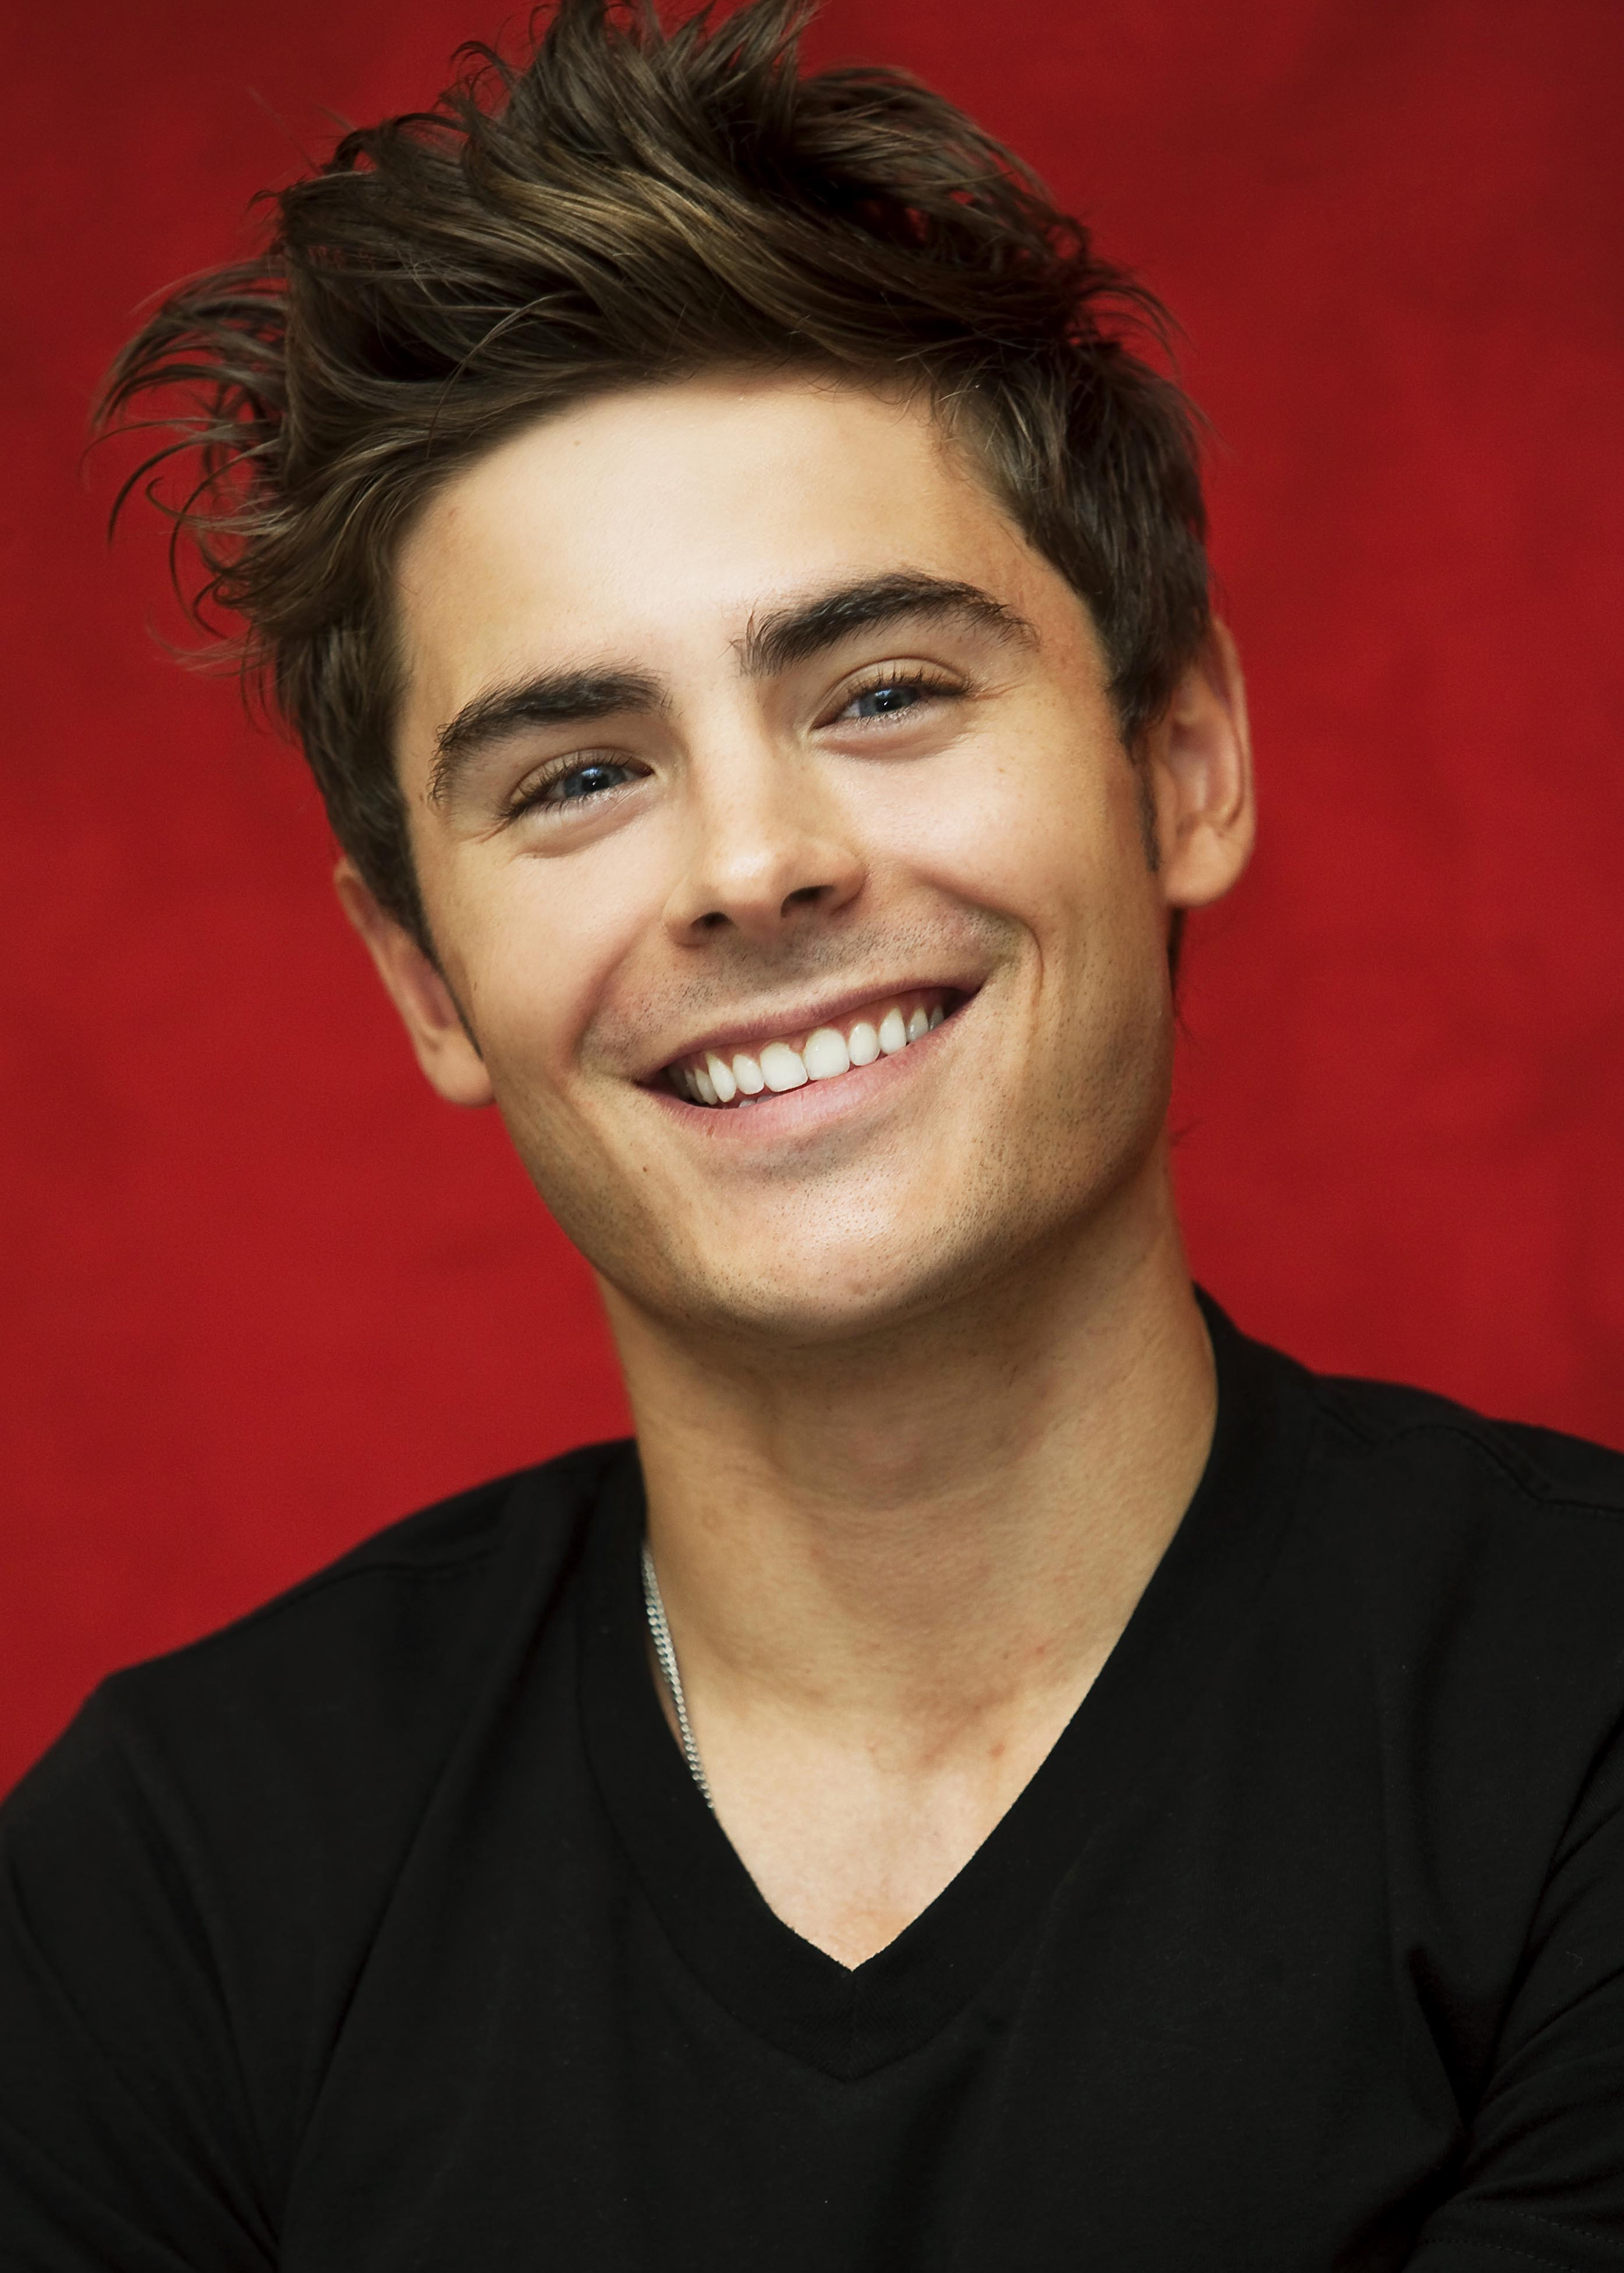 Zac Efron photo, pics, wallpaper - photo #